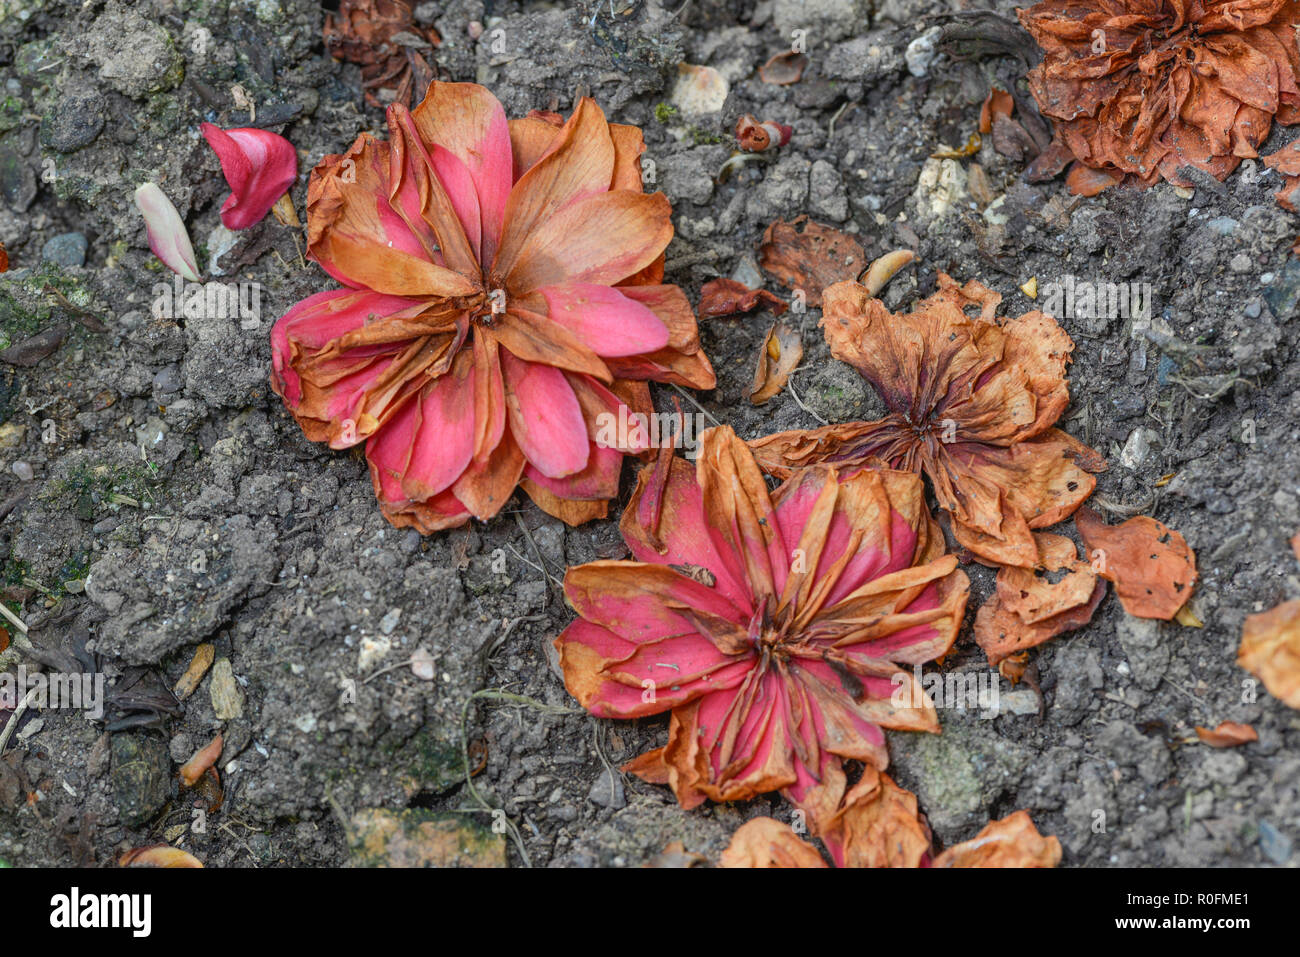 Dead pink red flowers on earthy ground. Metaphor 'seen better days', dead flowers. - Stock Image